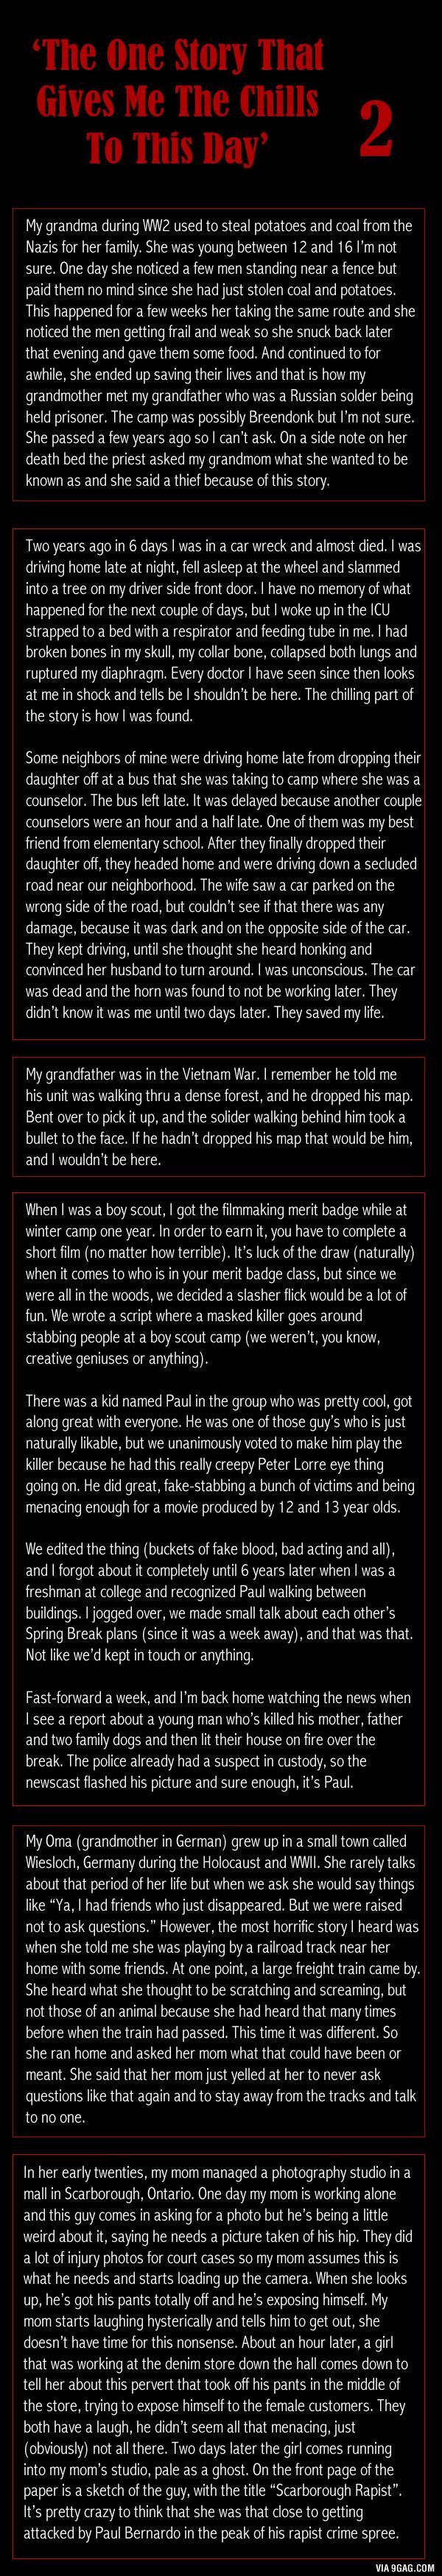 'The One Story That Gives Me The Chills To This Day' 2